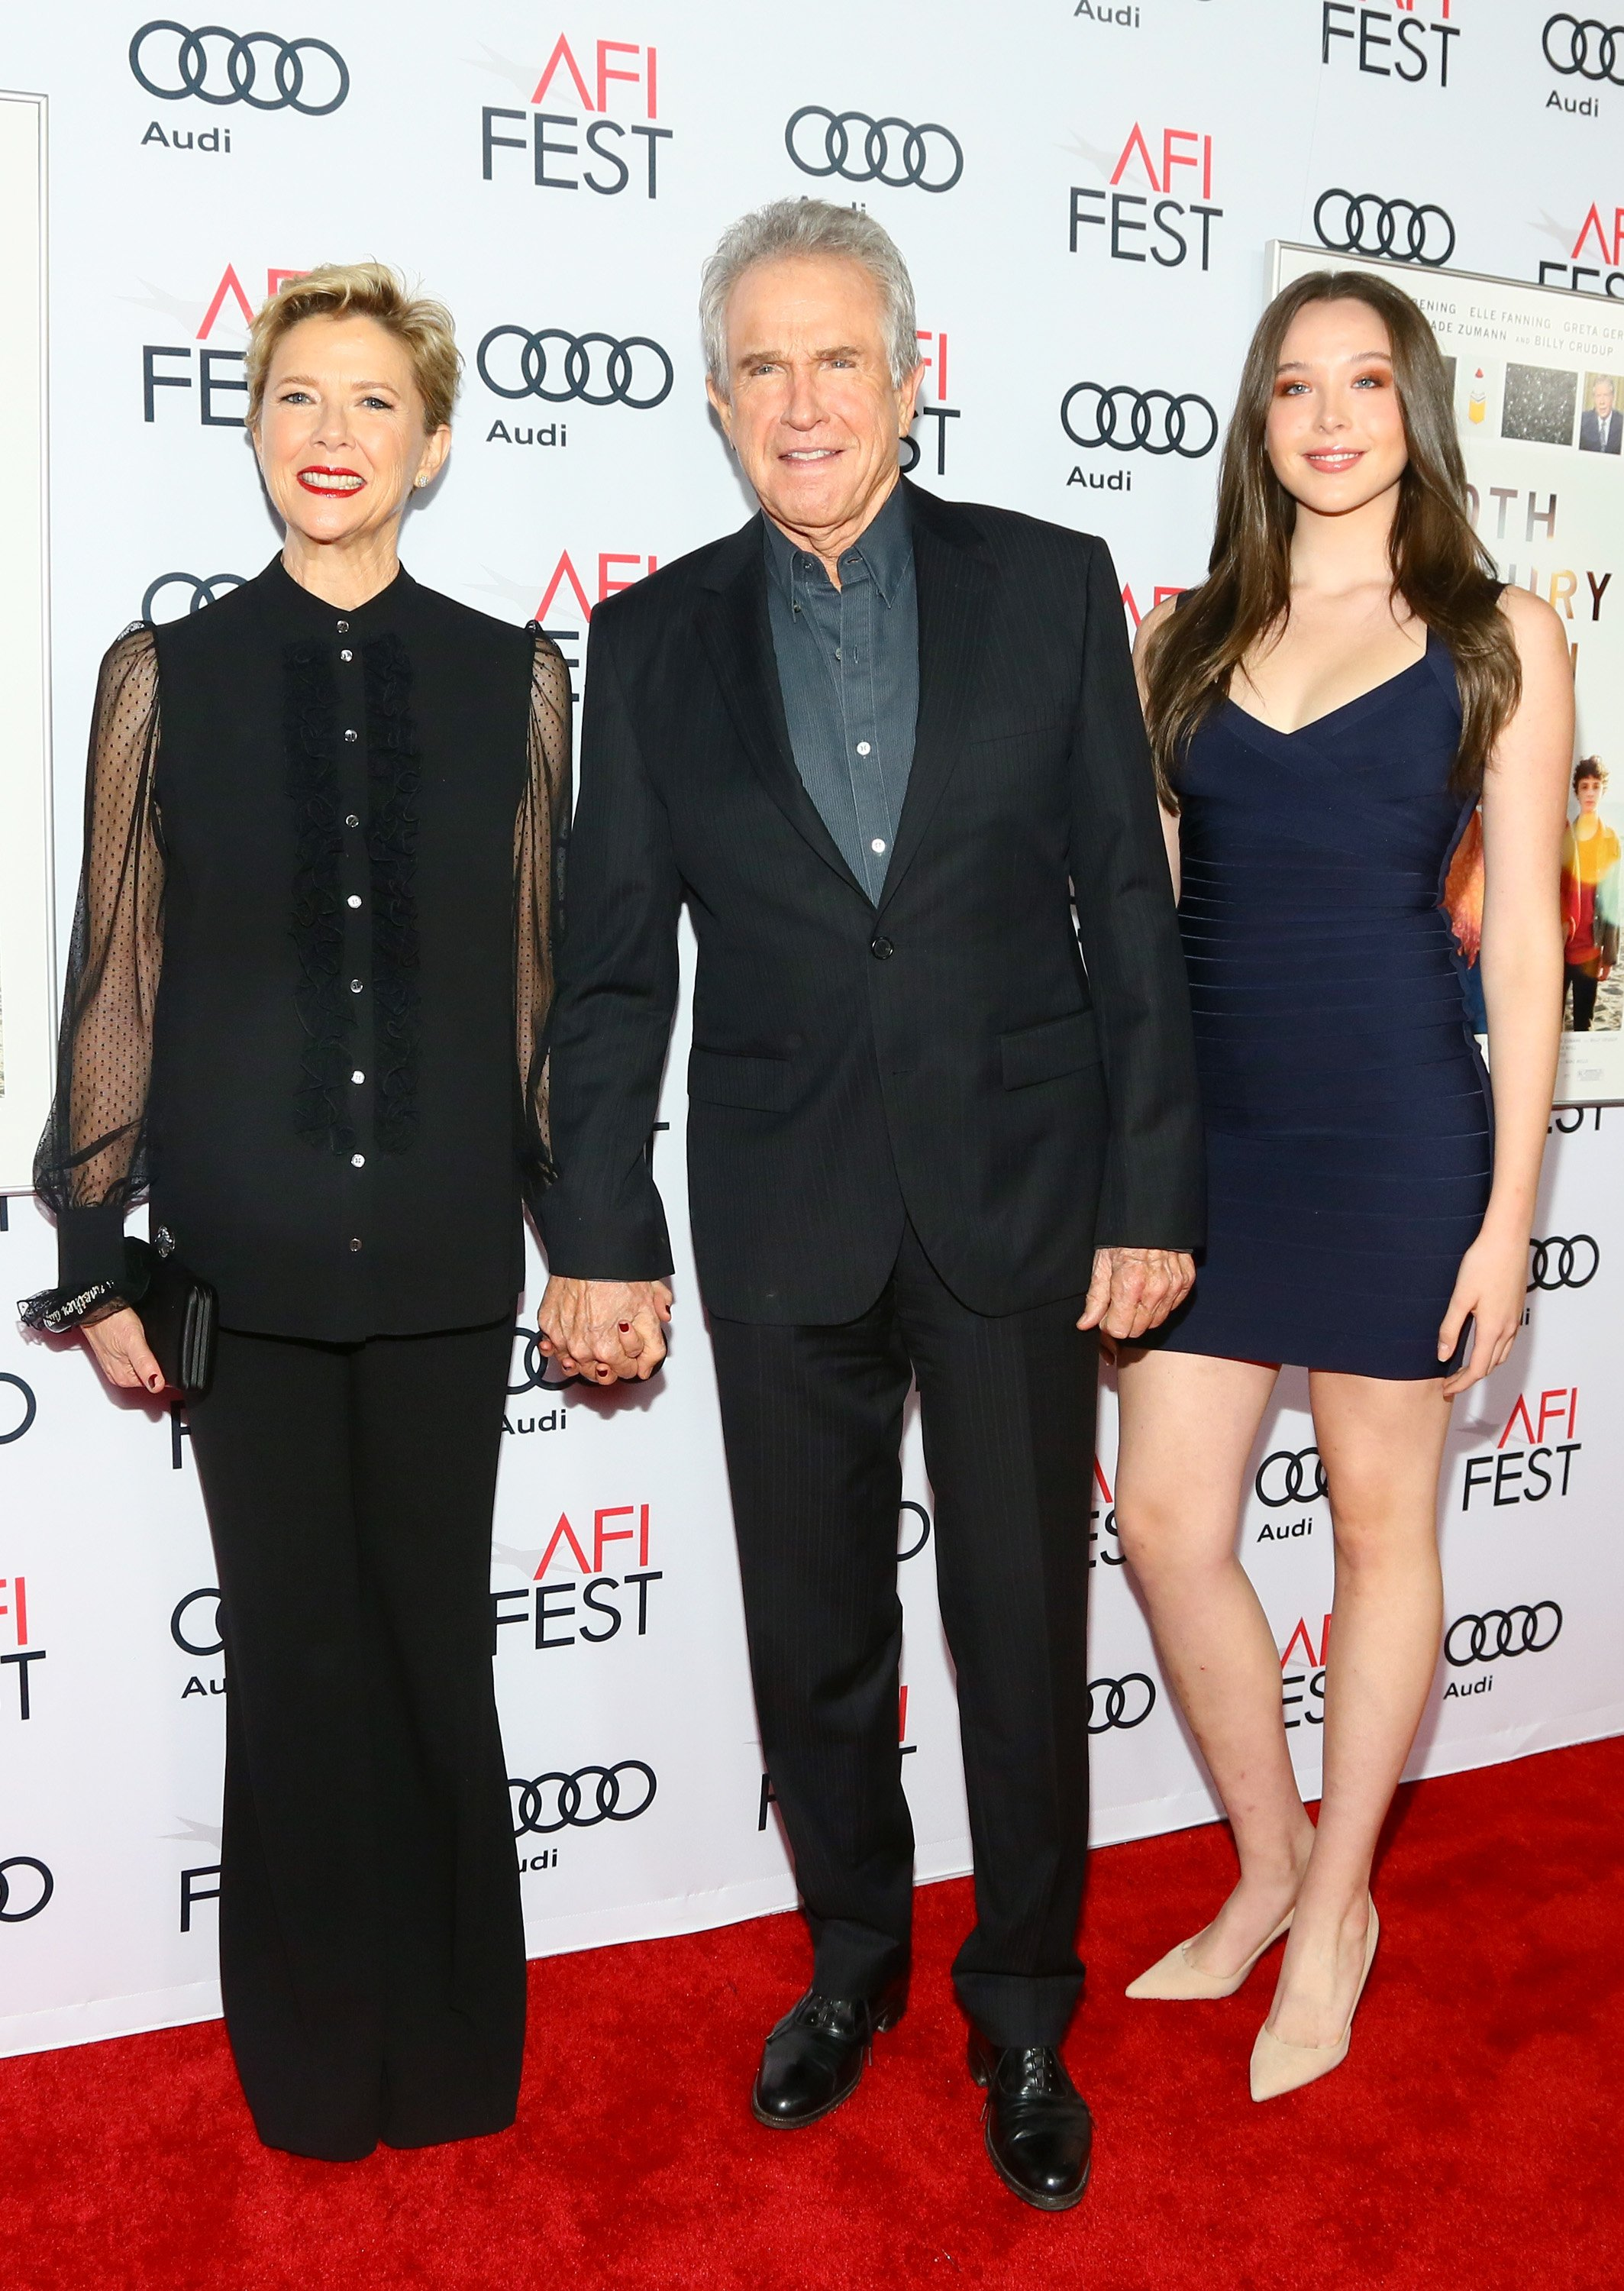 """Annette Bening, Ella Beatty and actor Warren Beatty, attend a gala screening of A24's """"20th Century Women"""" on November 16, 2016 in Hollywood, California 